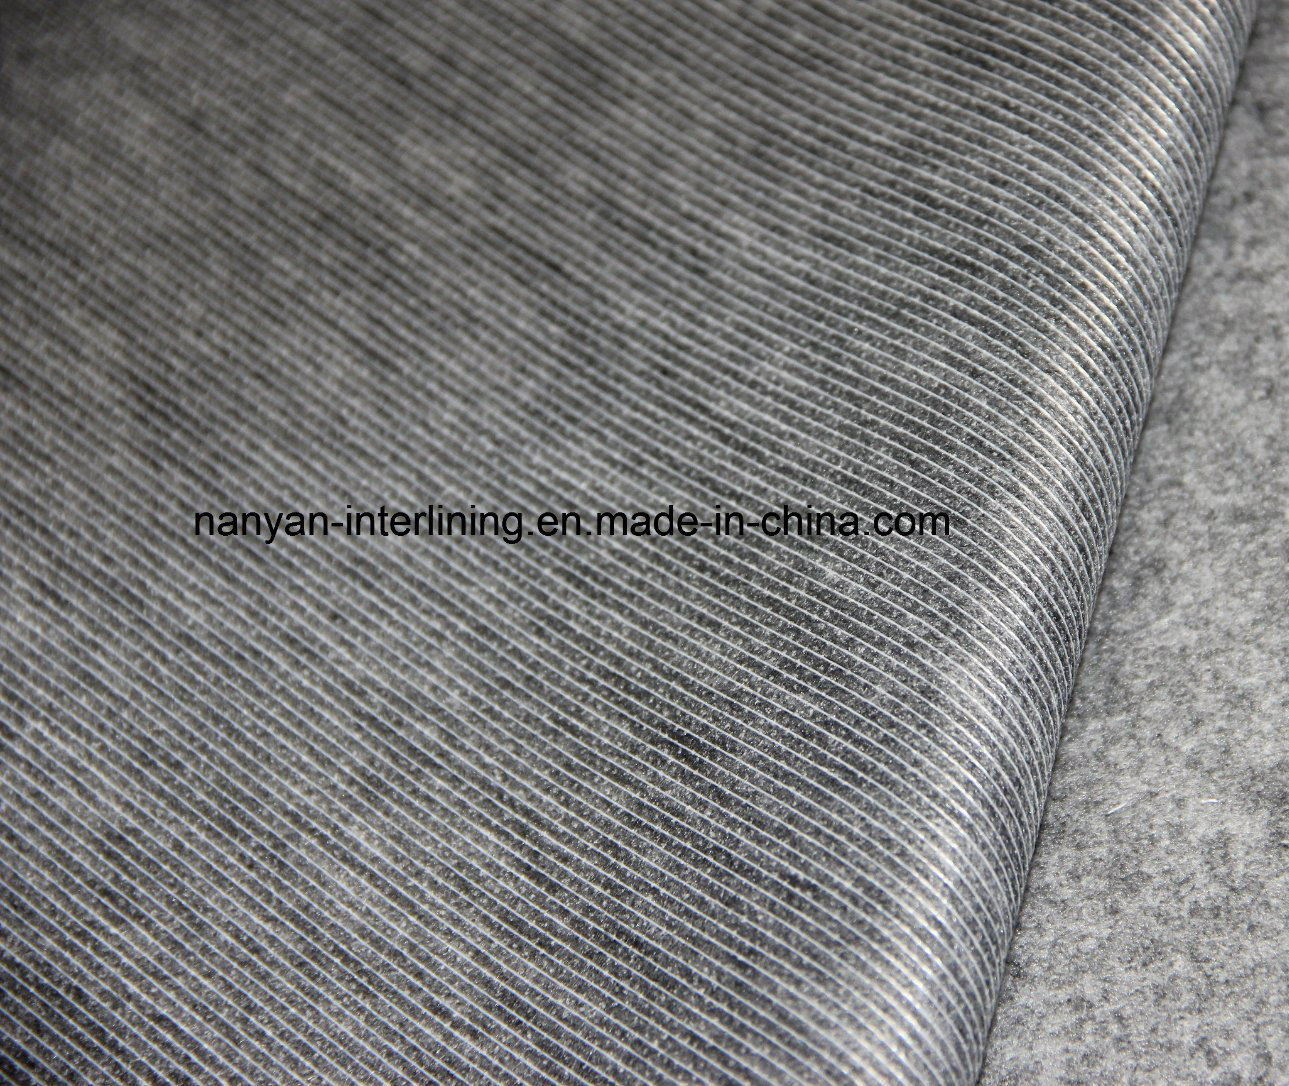 Nonwoven Fusible Interlining